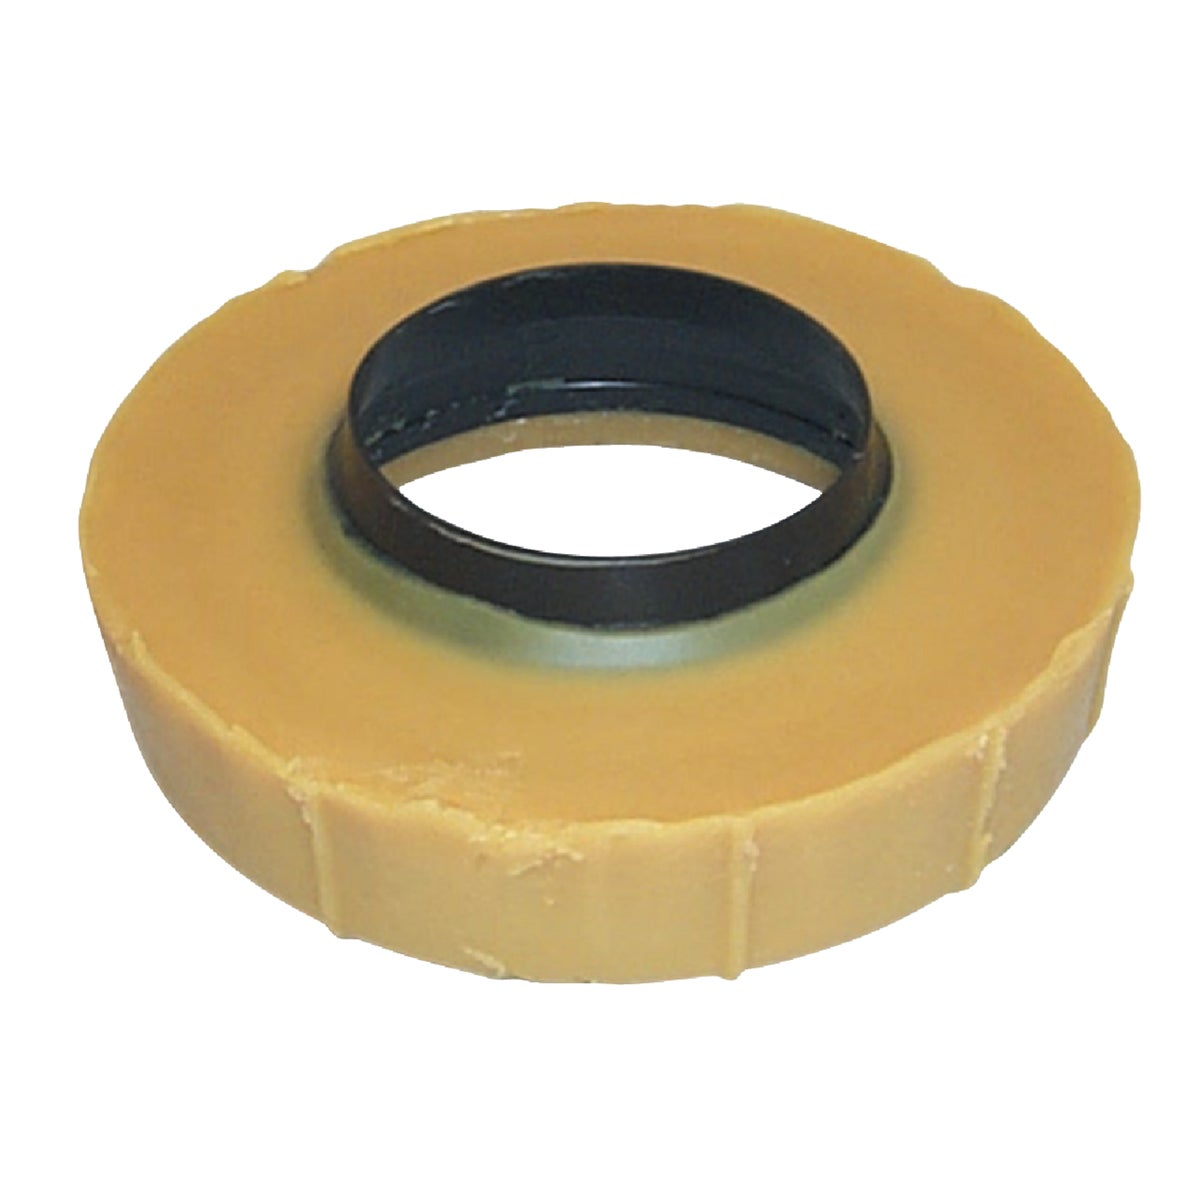 FLANGED WAX GASKET - 001118 by Wm H Harvey Co